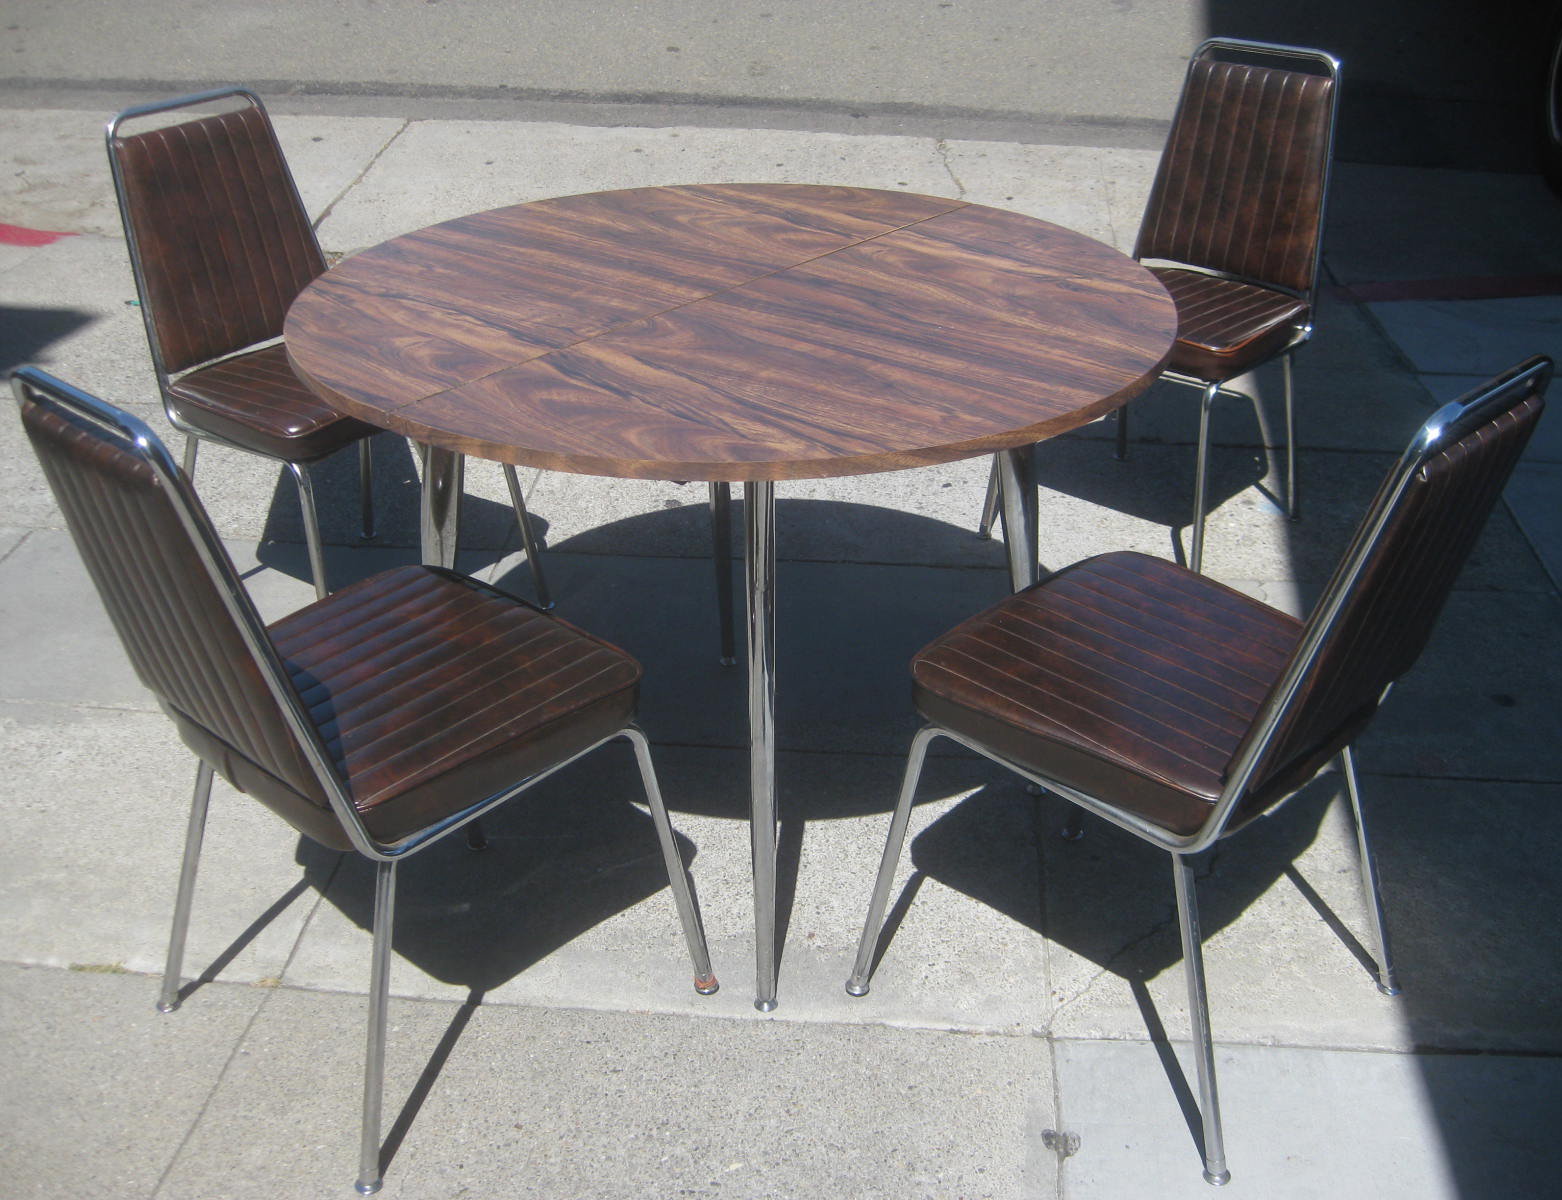 UHURU FURNITURE & COLLECTIBLES: SOLD - Retro Kitchen Table ...